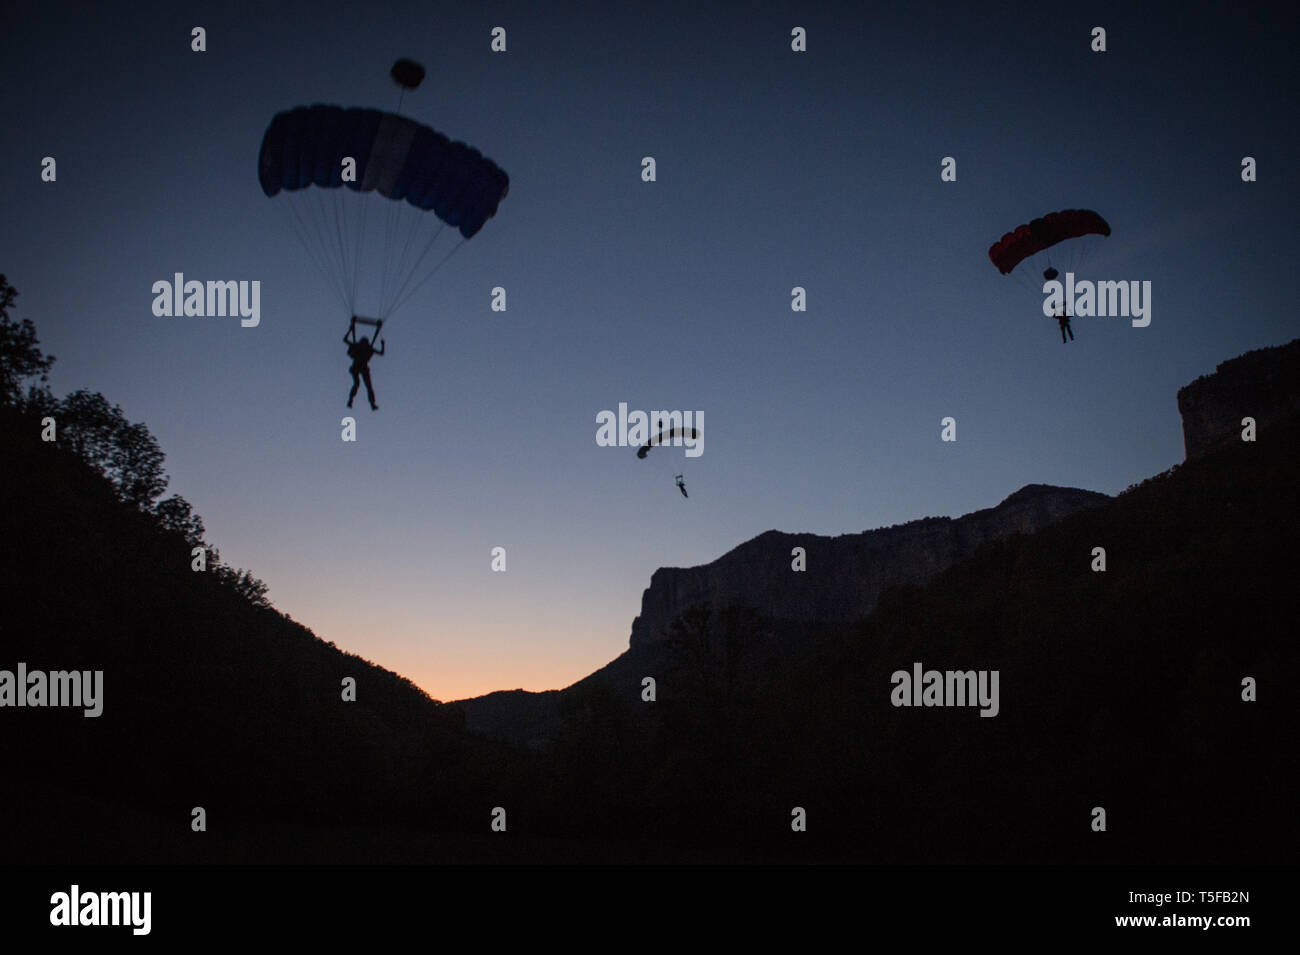 CHORANCHE, FRANCE - AUGUST 21: Three people with a parachute jumping from a cliff in france, Auvergne-rhône-alpes, Choranche, France on August 21, 2015 in Choranche, France. (Photo by Fred Marie/Art in All of Us/Corbis via Getty Images) - Stock Image